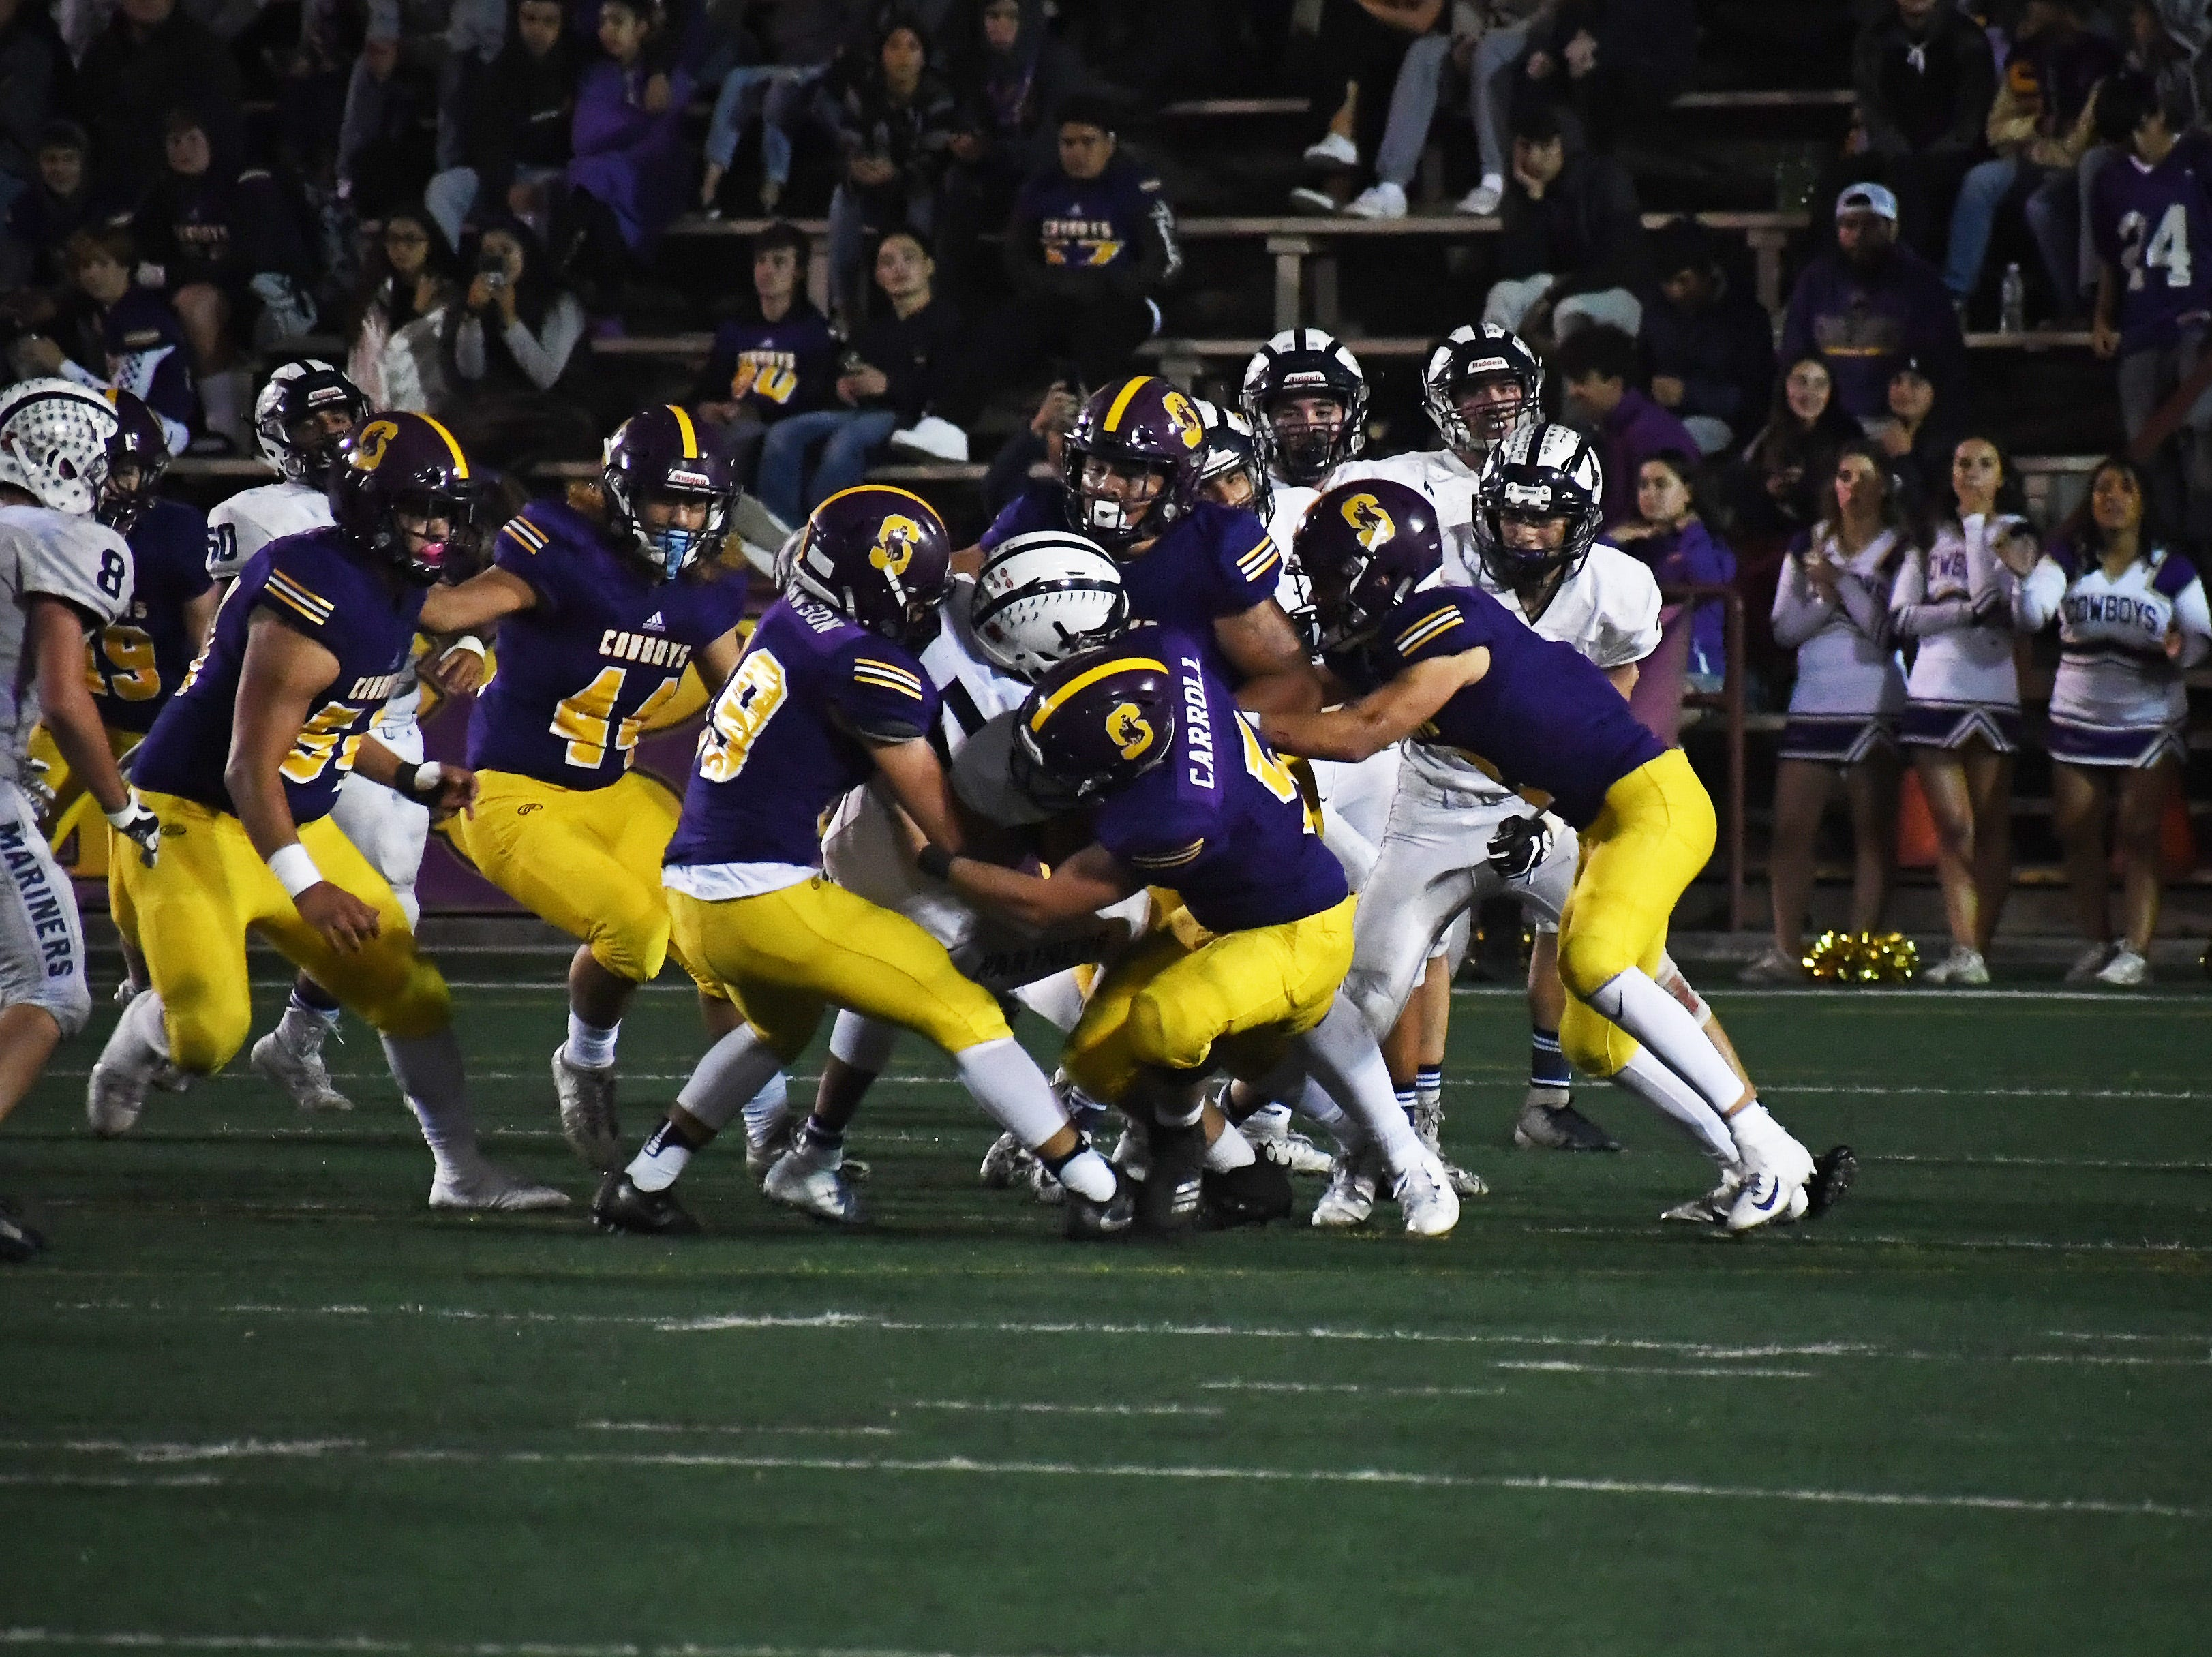 Salinas defenders Tyler Carroll (5), Kyle Lawson (99) and others tackle an Aptos running back behind the line.